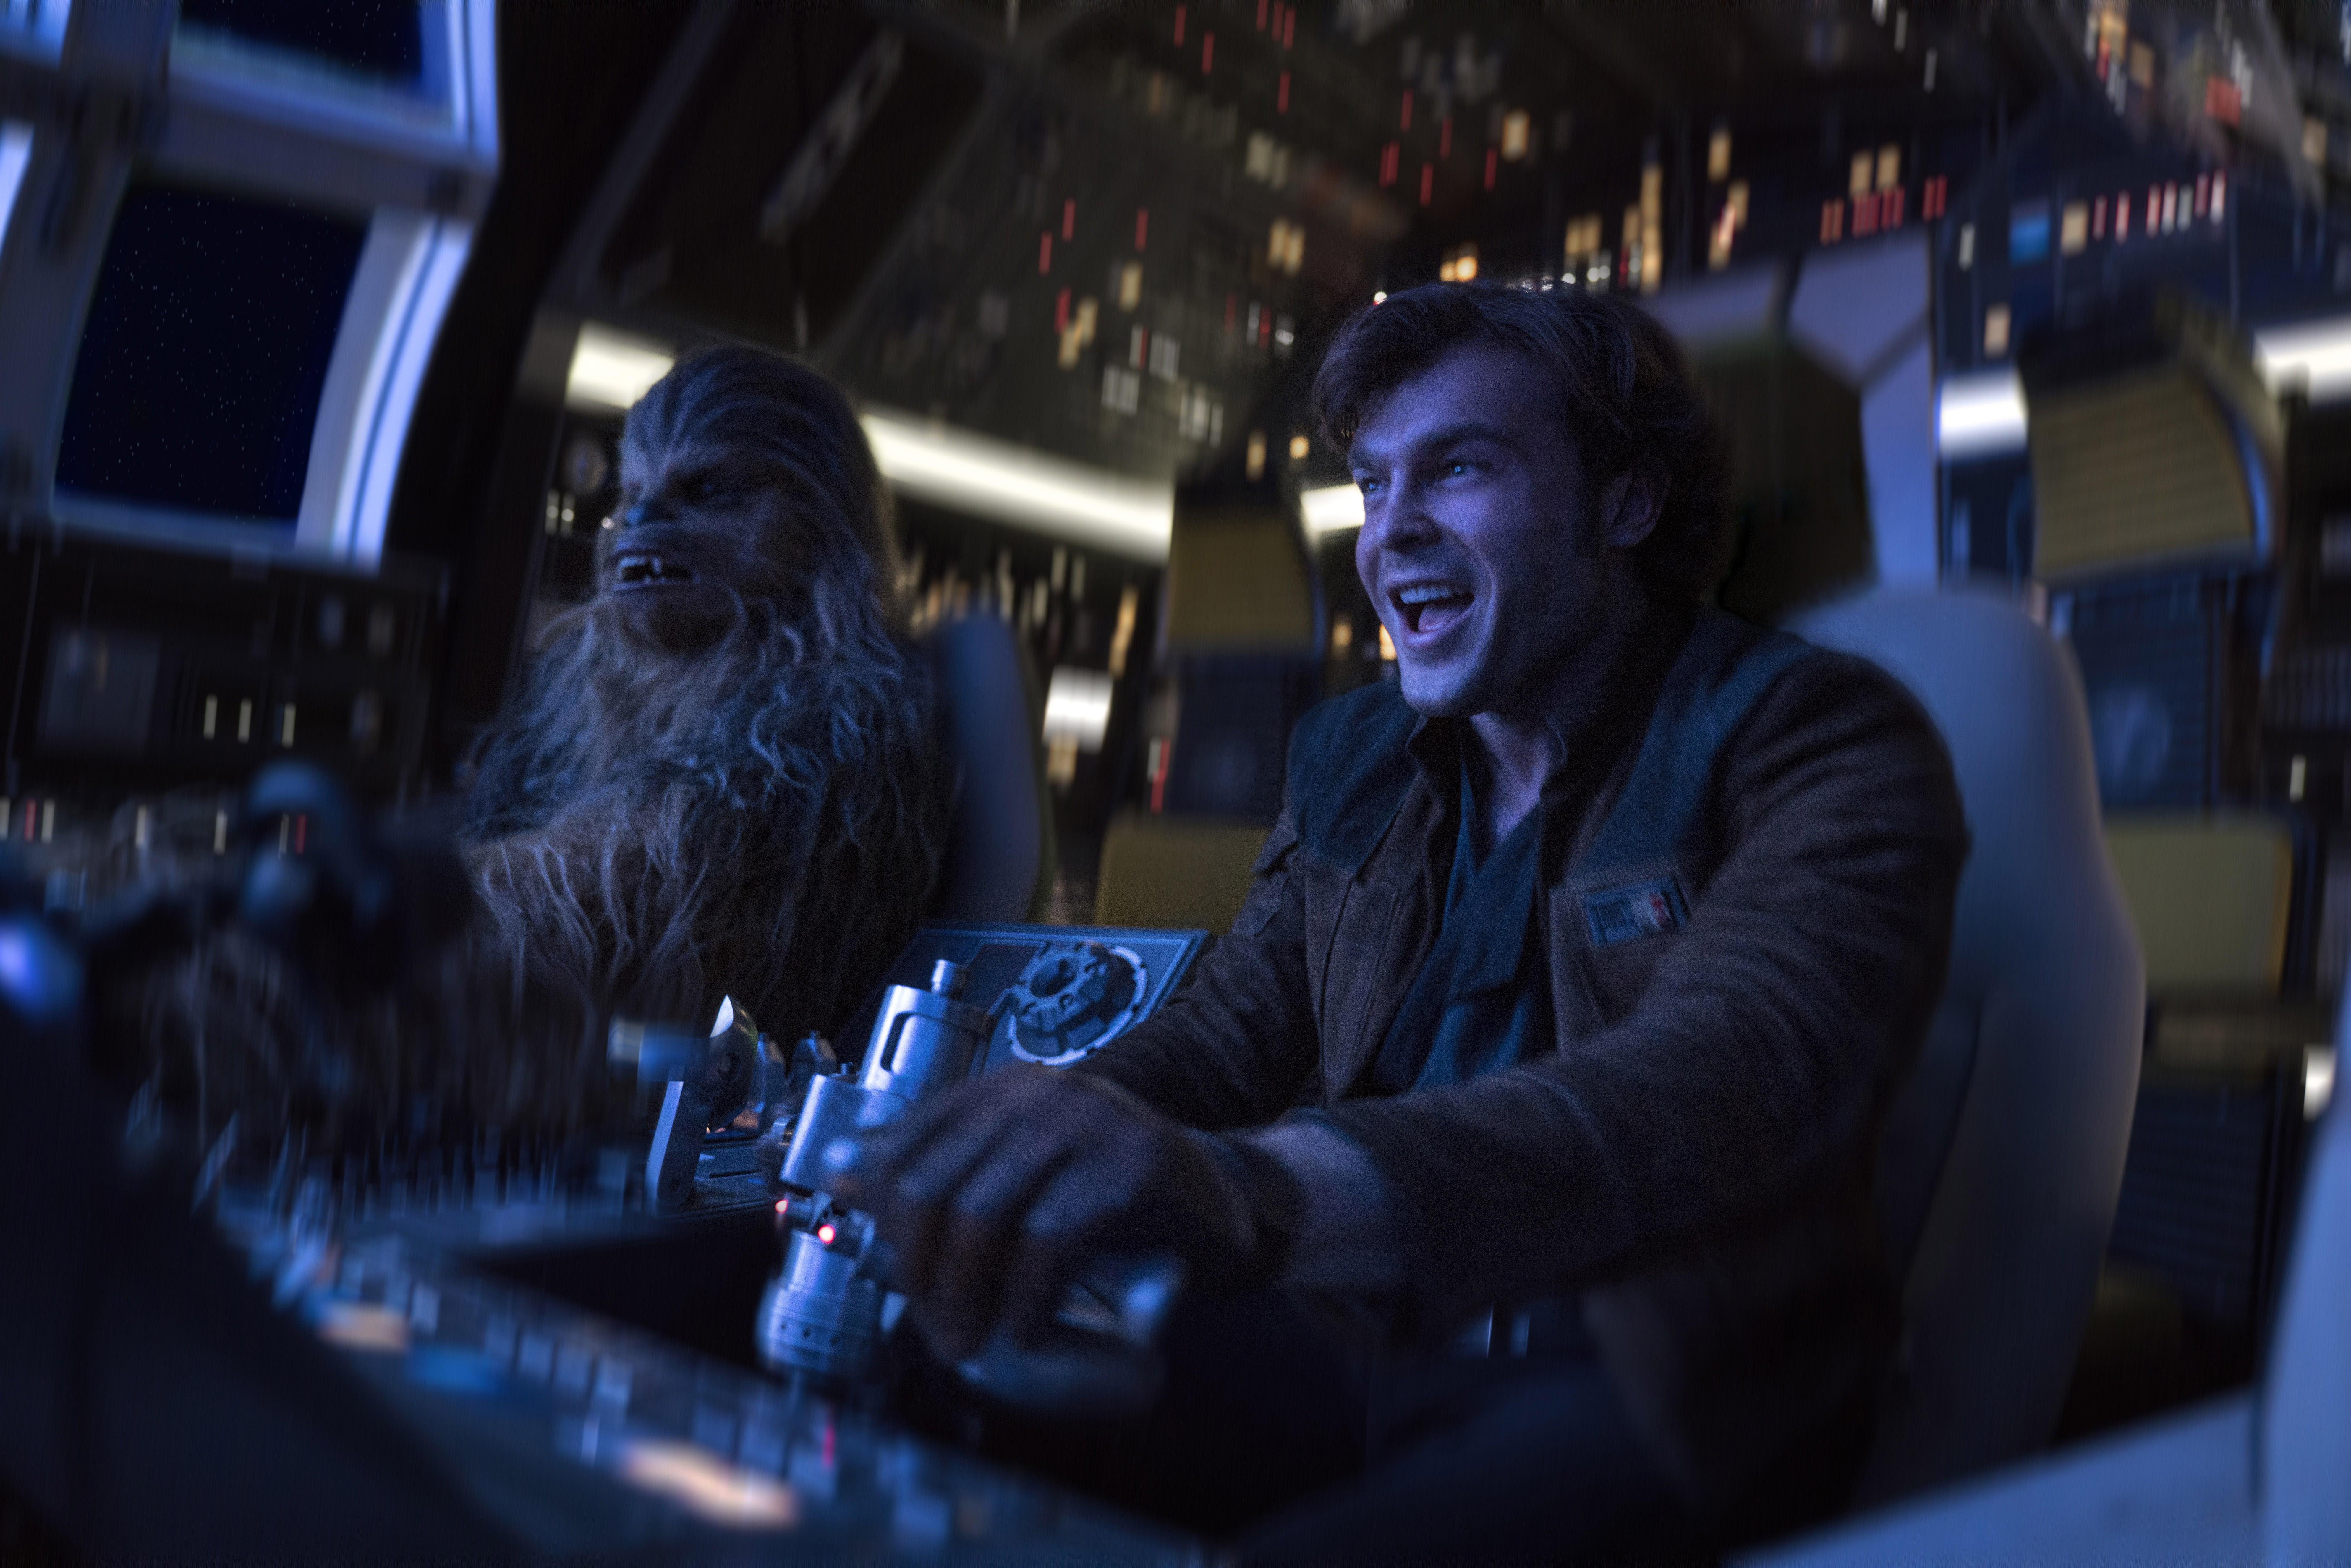 Han Solo And Chewie stealing a ship